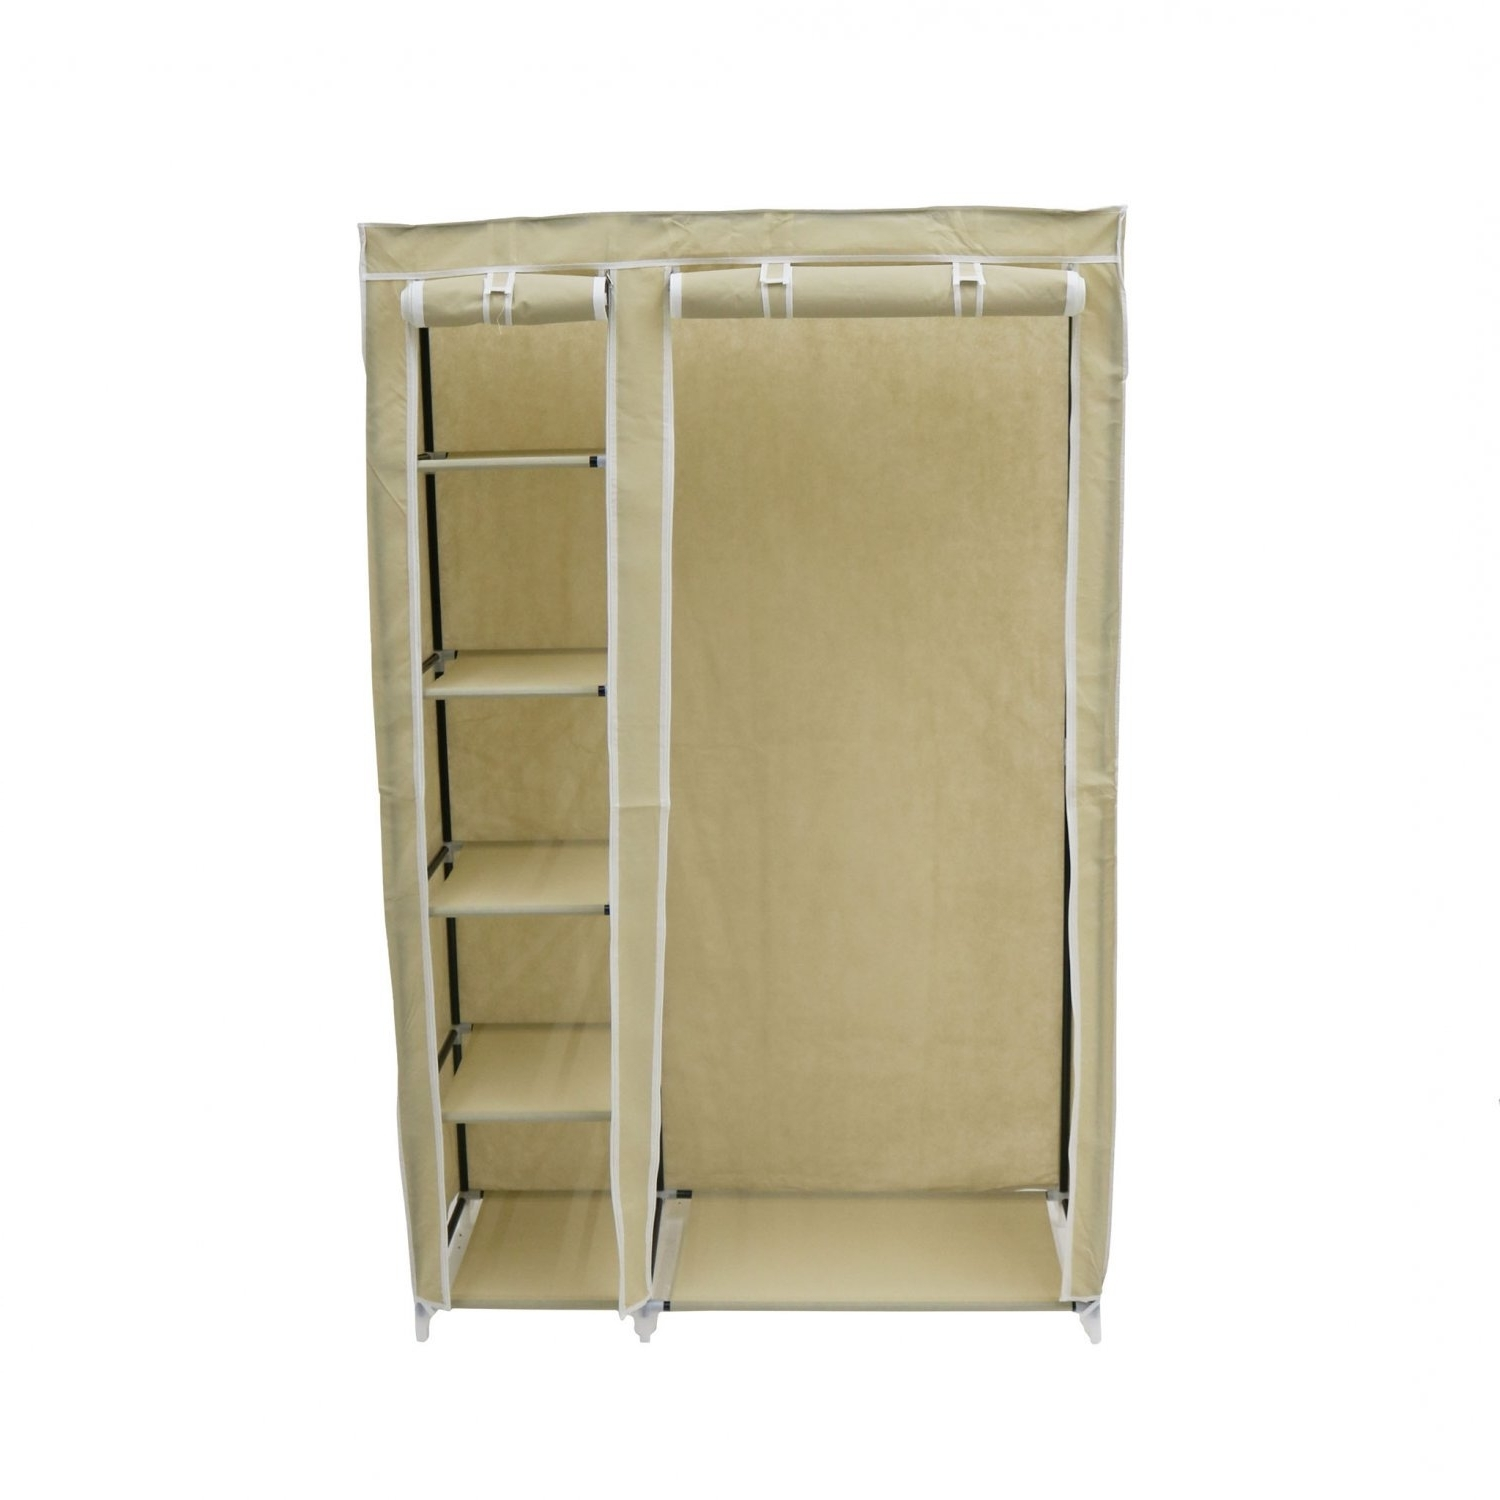 Double Cream Canvas Wardrobe Clothes Rail Hanging Storage Closet Pertaining To Most Current Double Hanging Rail For Wardrobes (View 14 of 15)